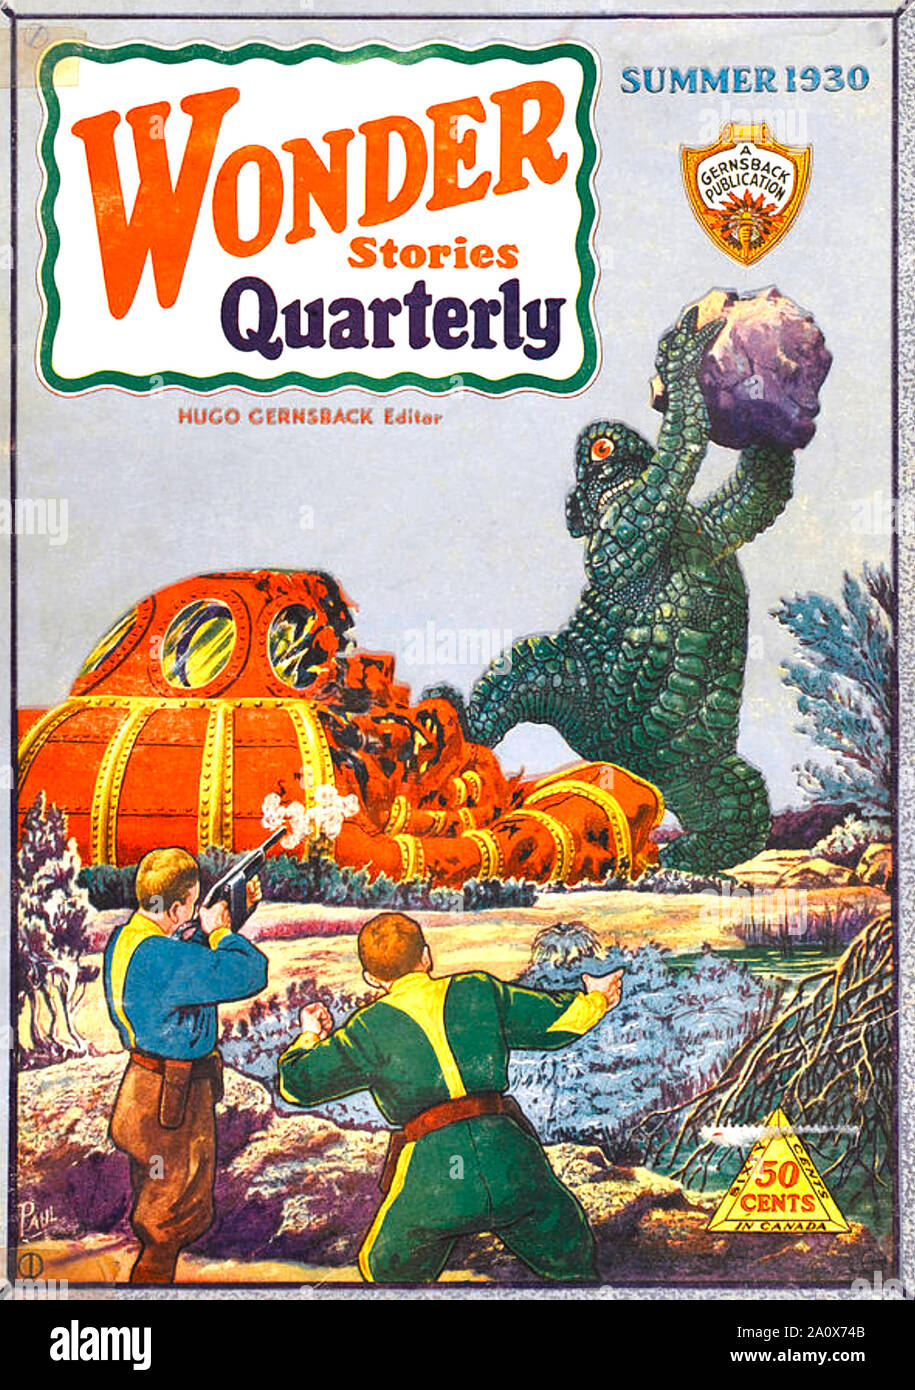 Amazing Stories Quarterly Summer 1930 A4 Glossy Vintage Sci-Fi Comic//Magazine Cover Art Print